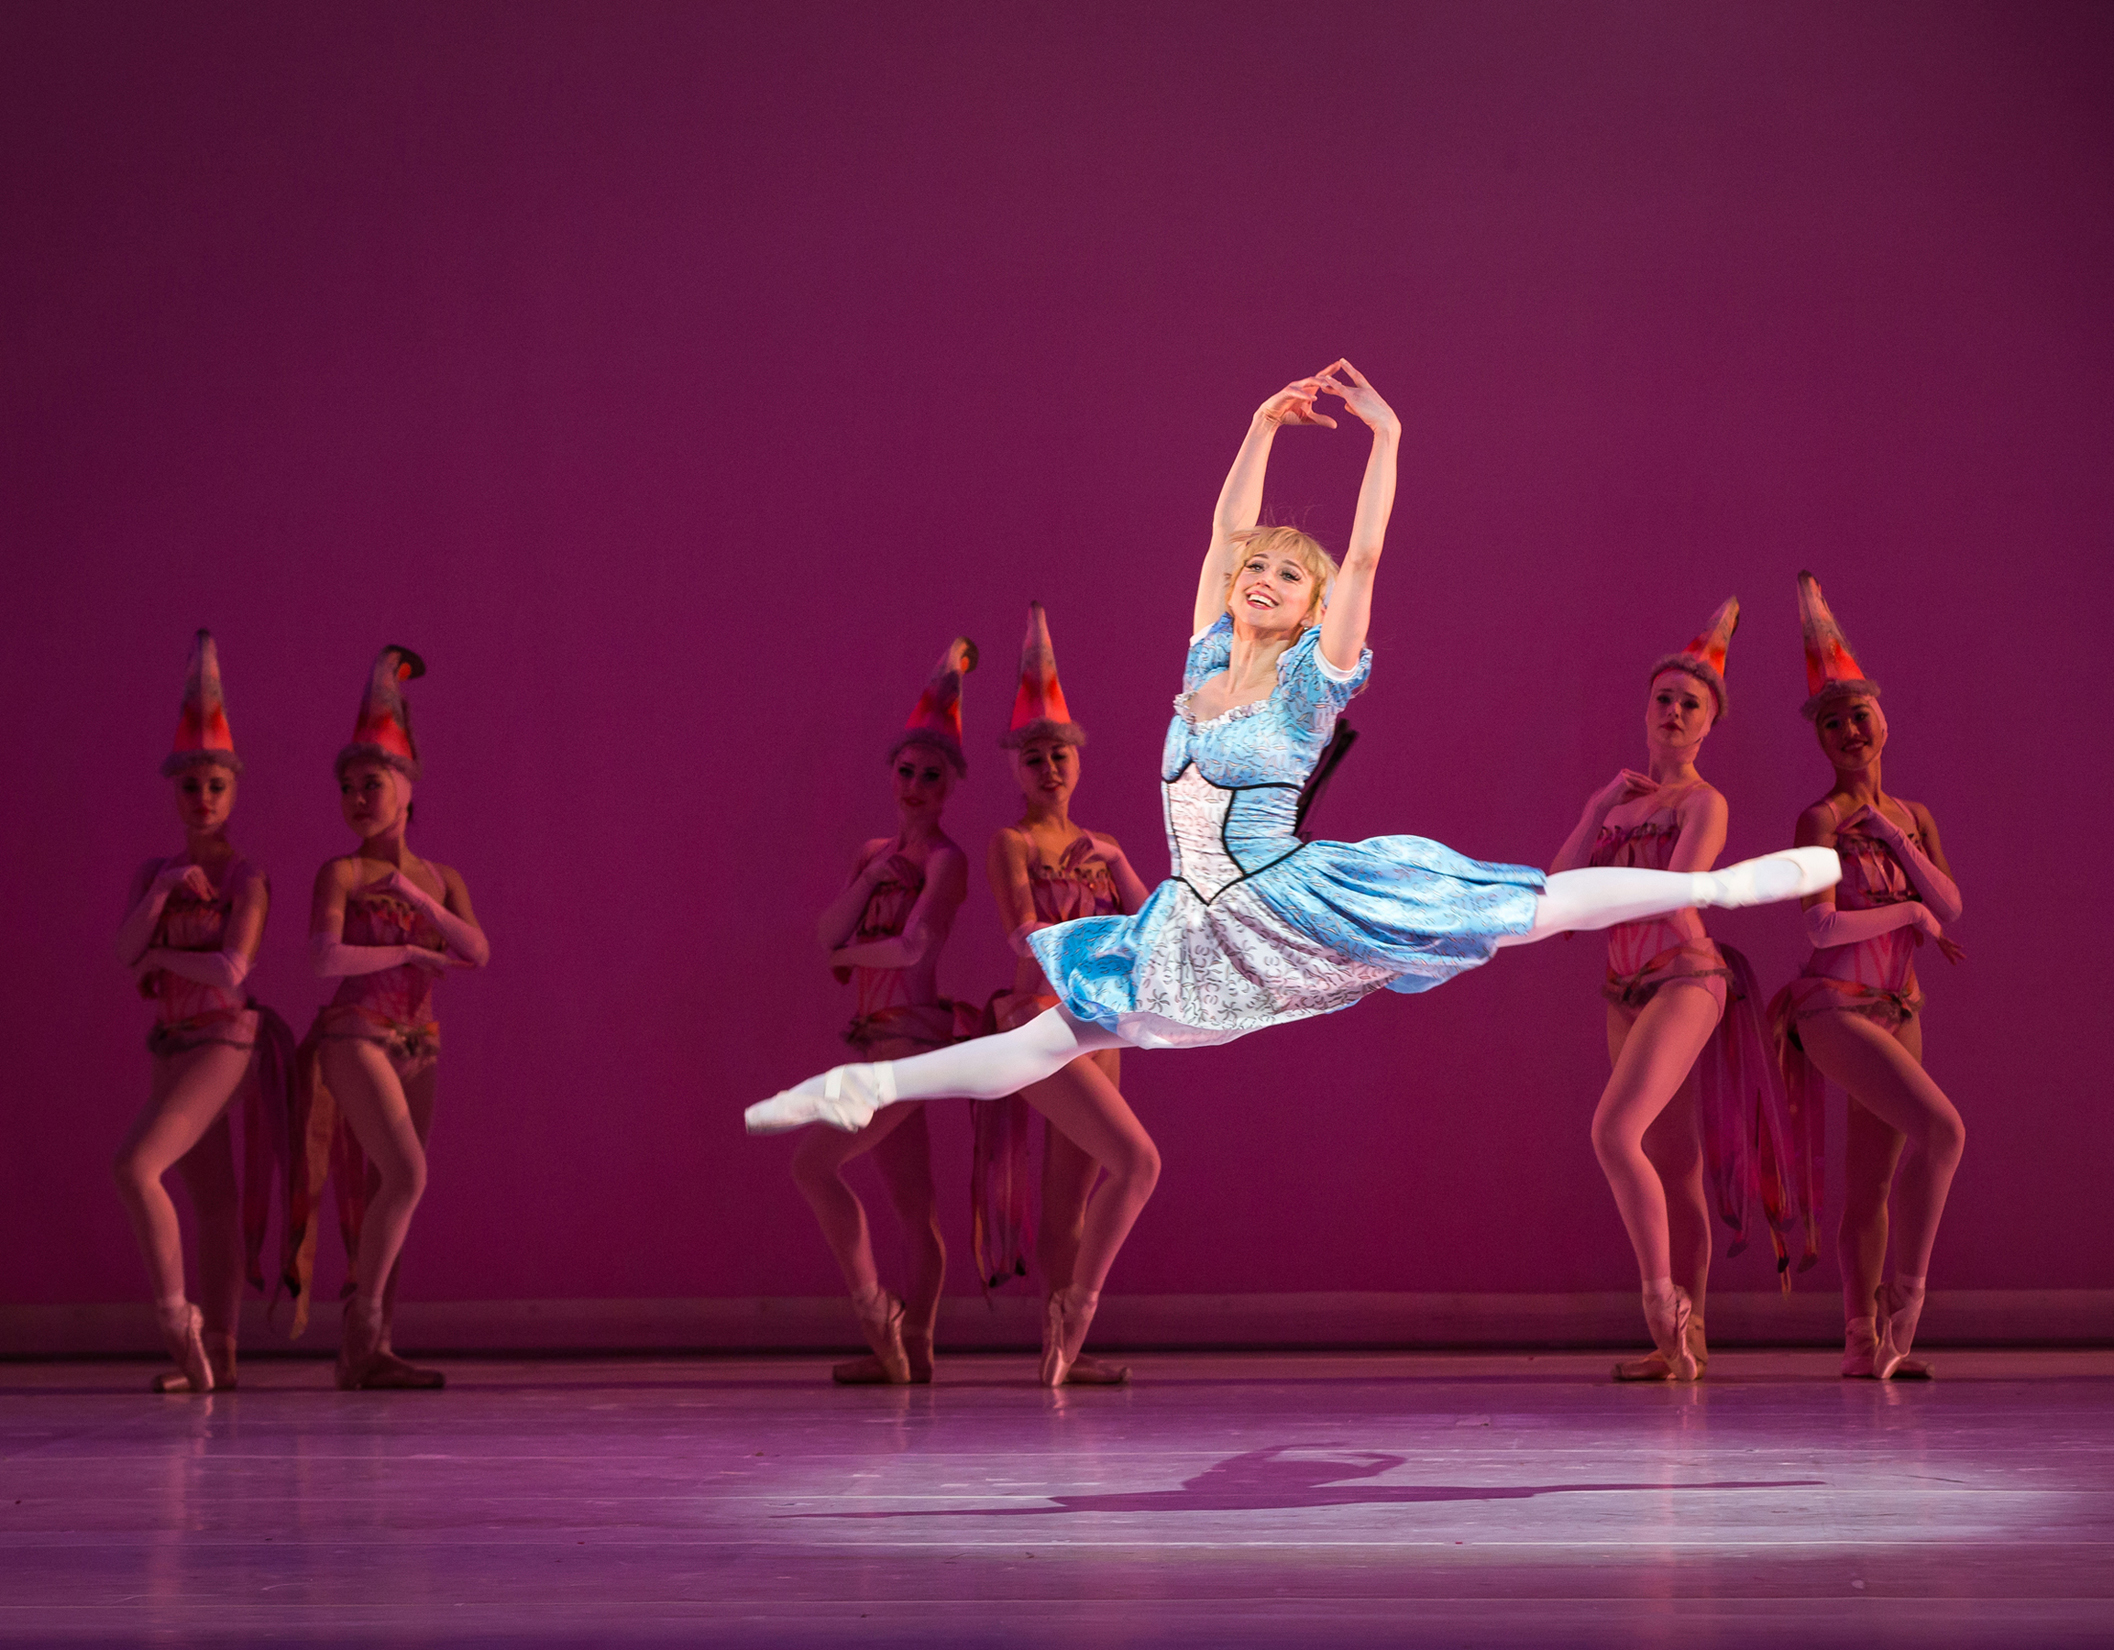 Sharon-Wehner-and-Artists-of-Colorado-Ballet-by-Mike-Watson.jpg